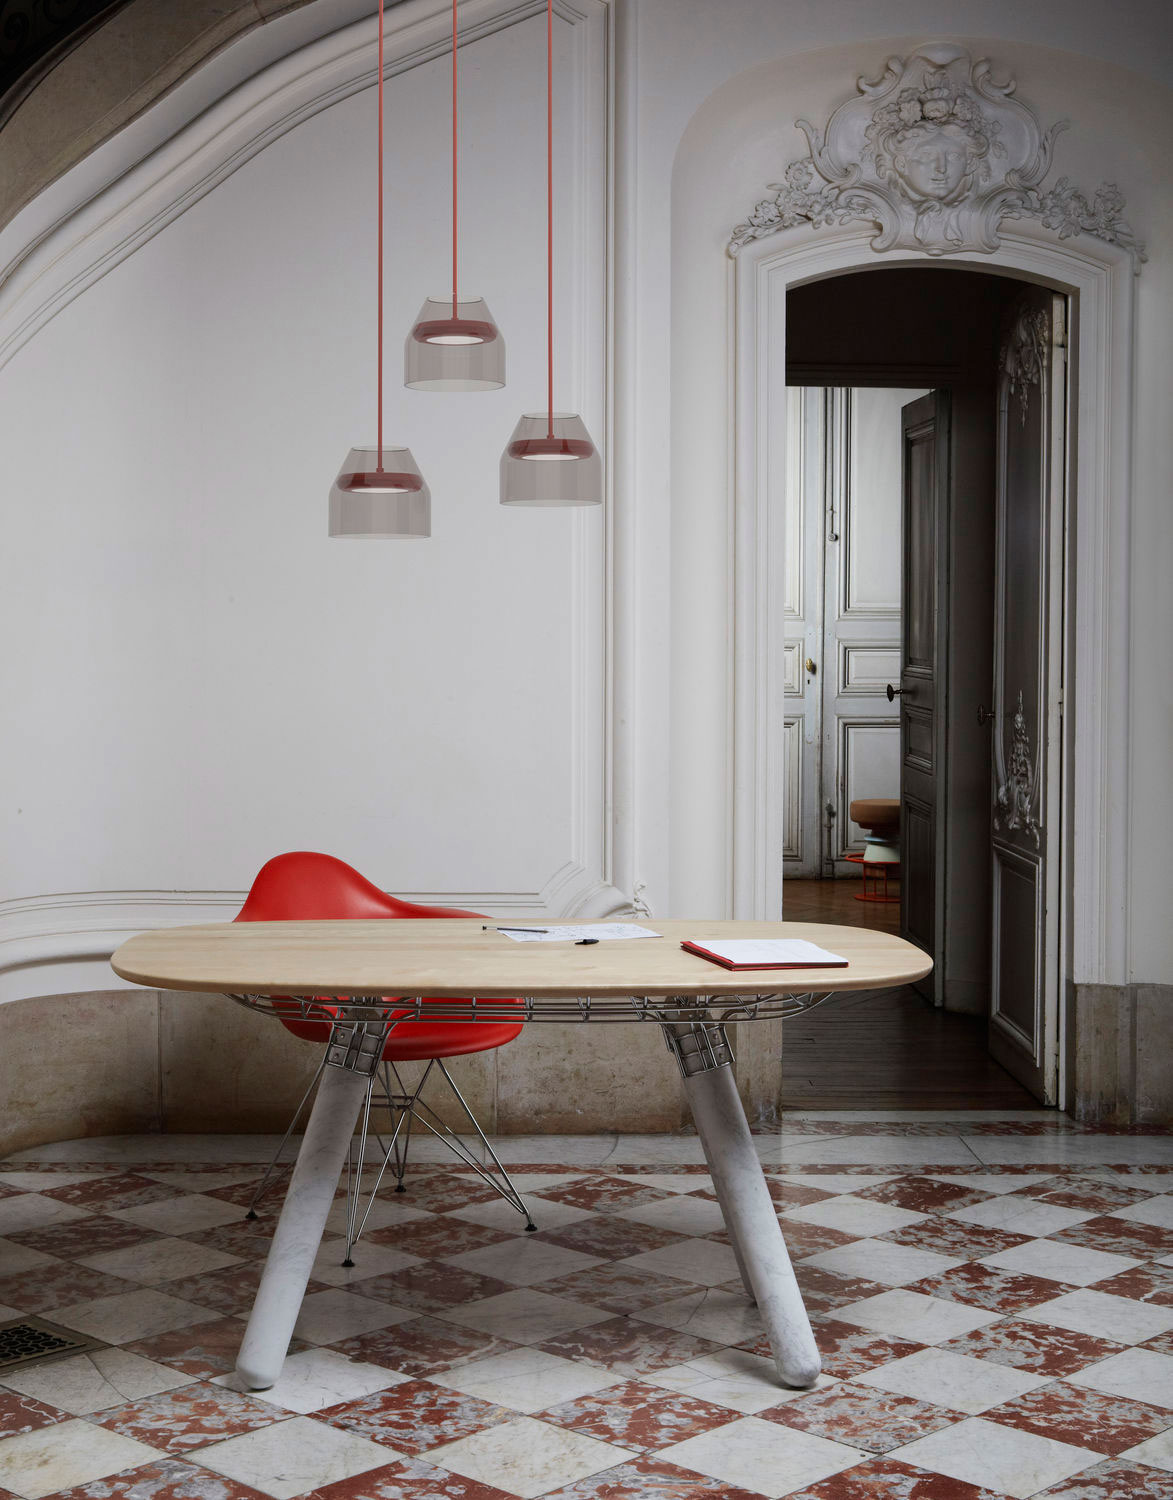 Magnum table by Pierre Favresse with Carrara marble legs from La Chance | Yellowtrace.